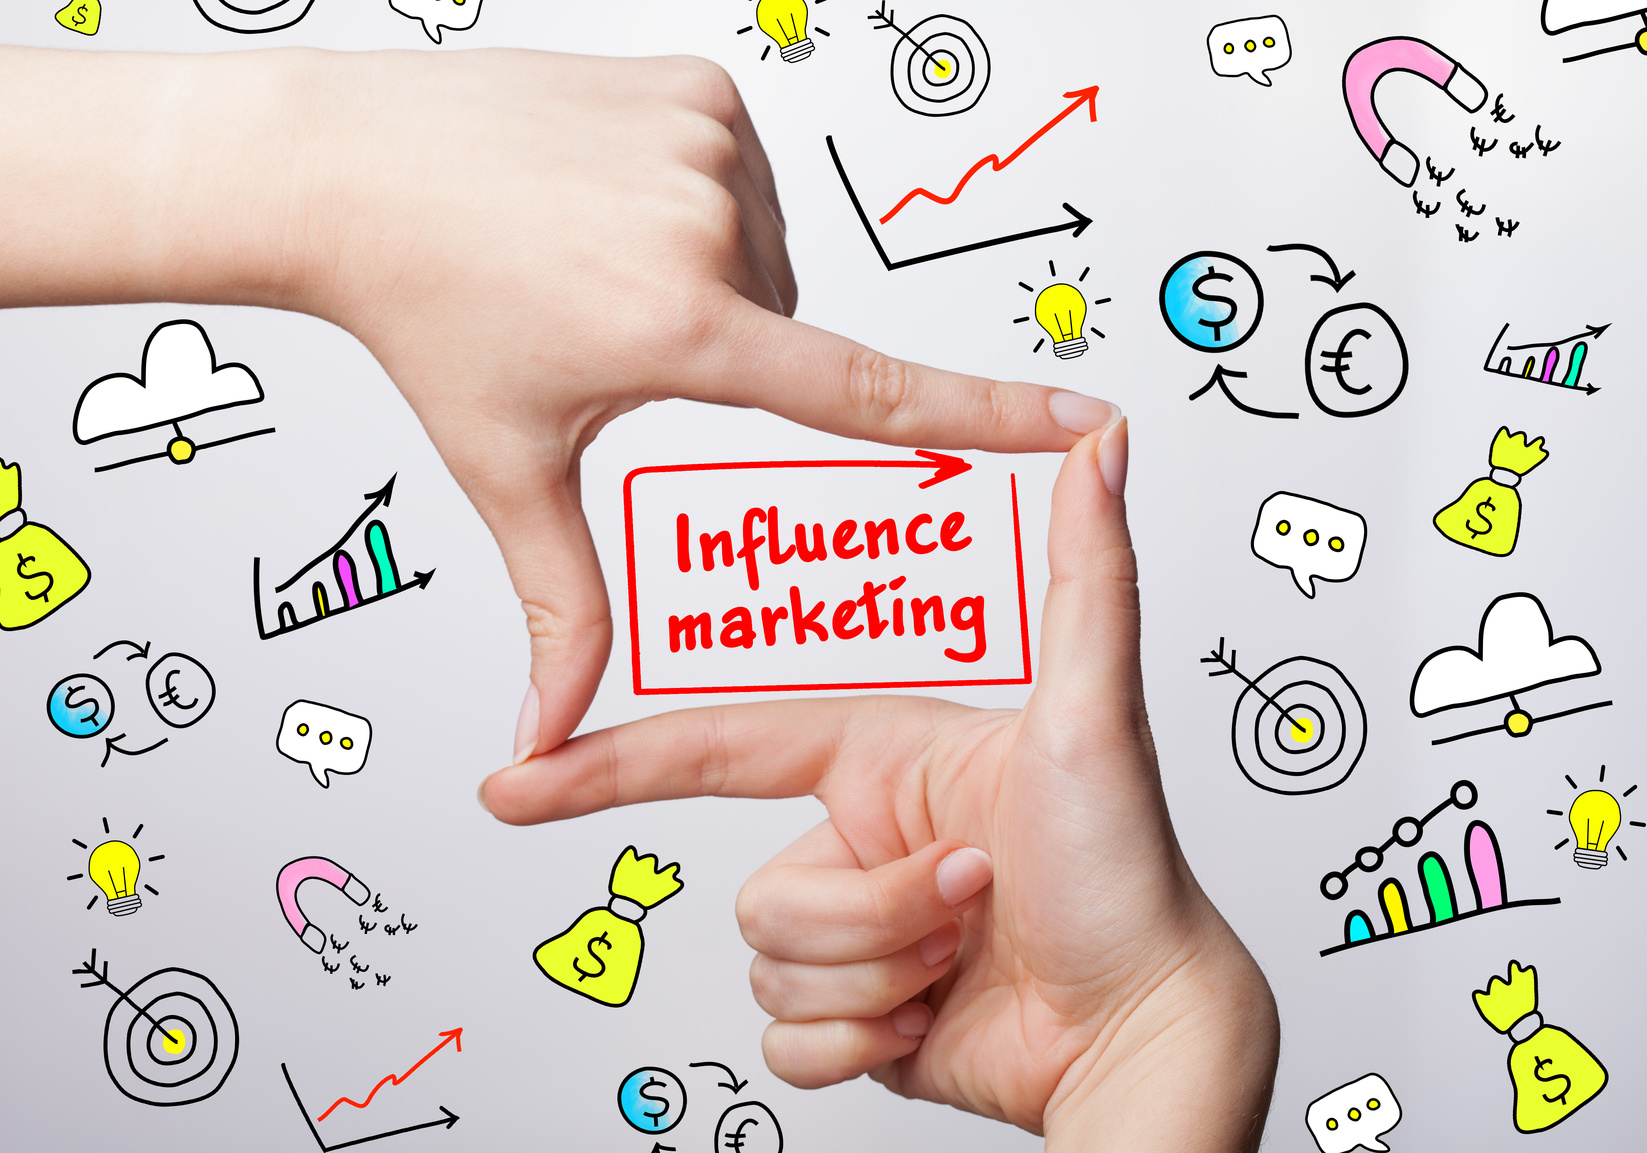 micro-influencer marketing mini-course training for small business